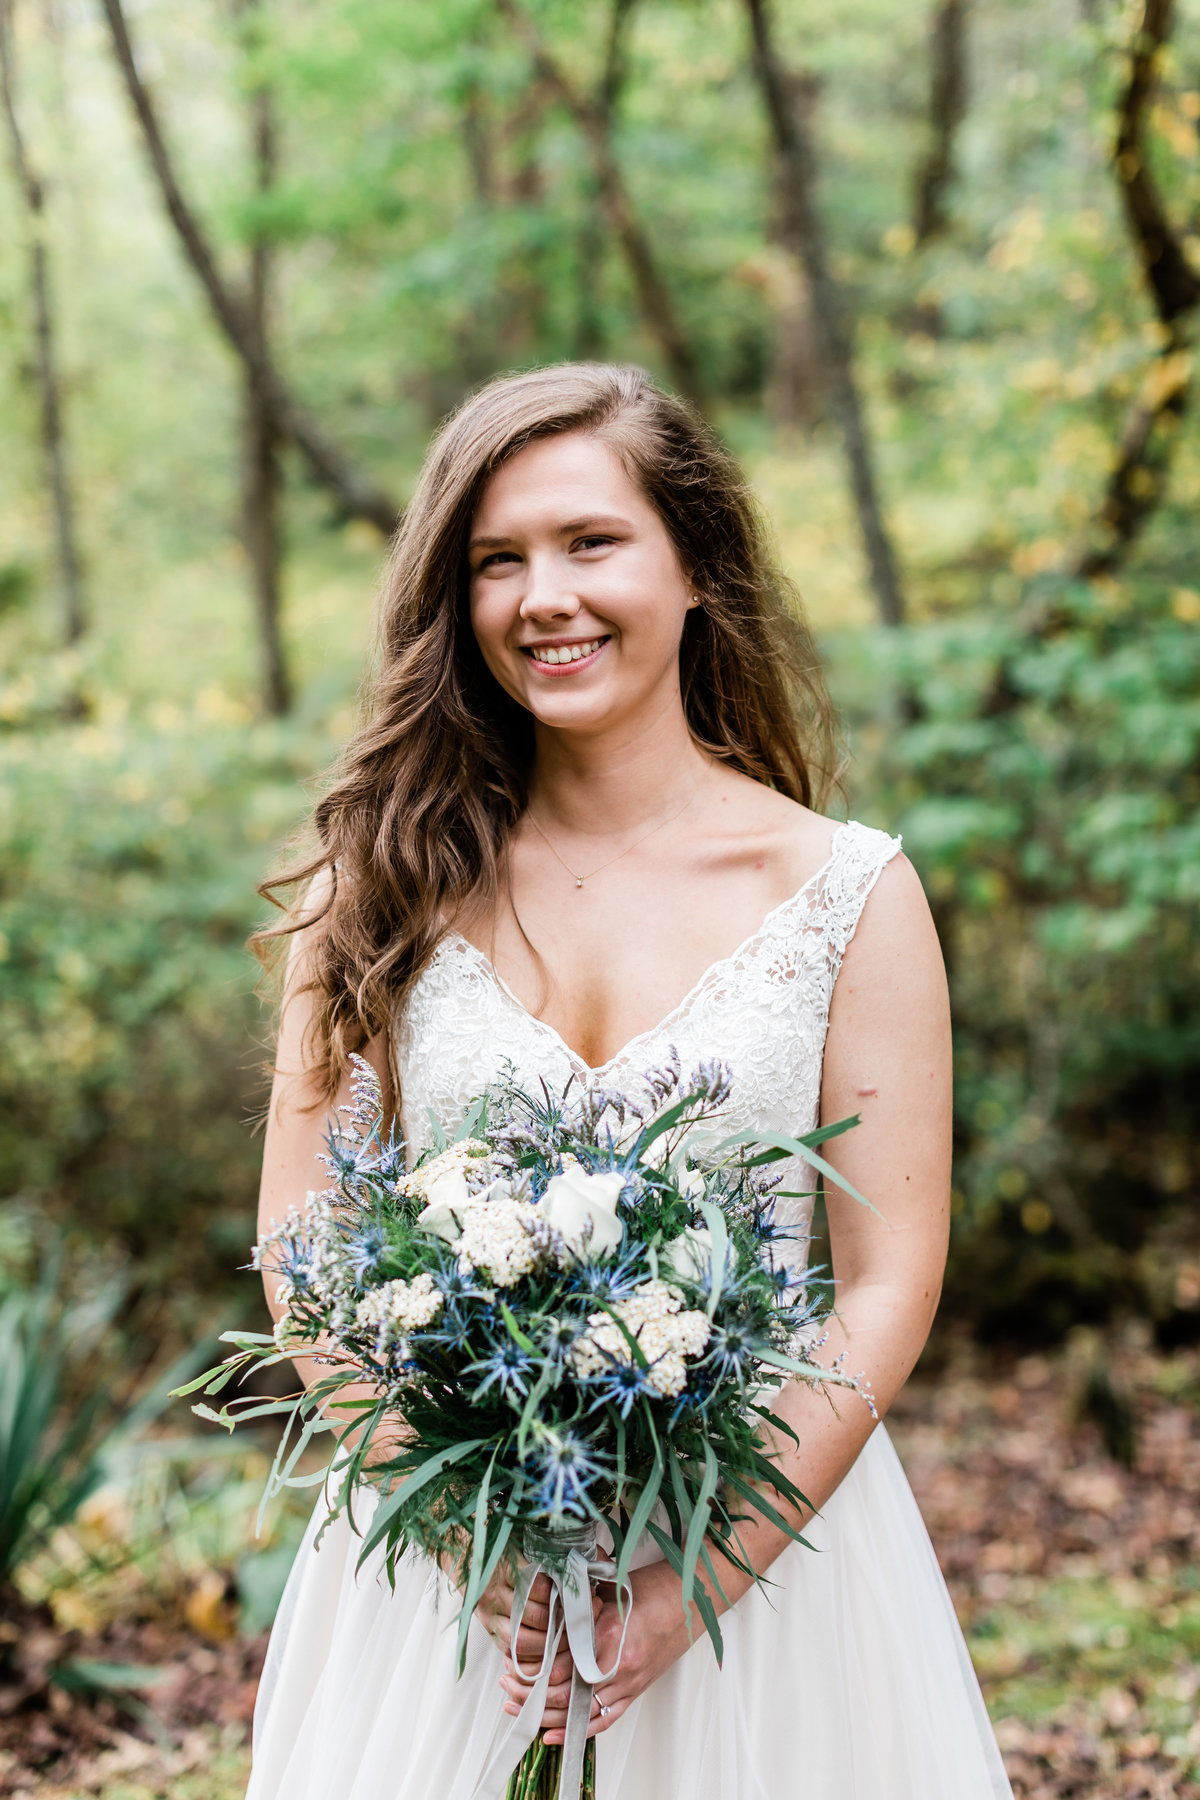 Danielle-Defayette-Photography-Mountain-Laurel-Farm-Wedding-Virginia-59